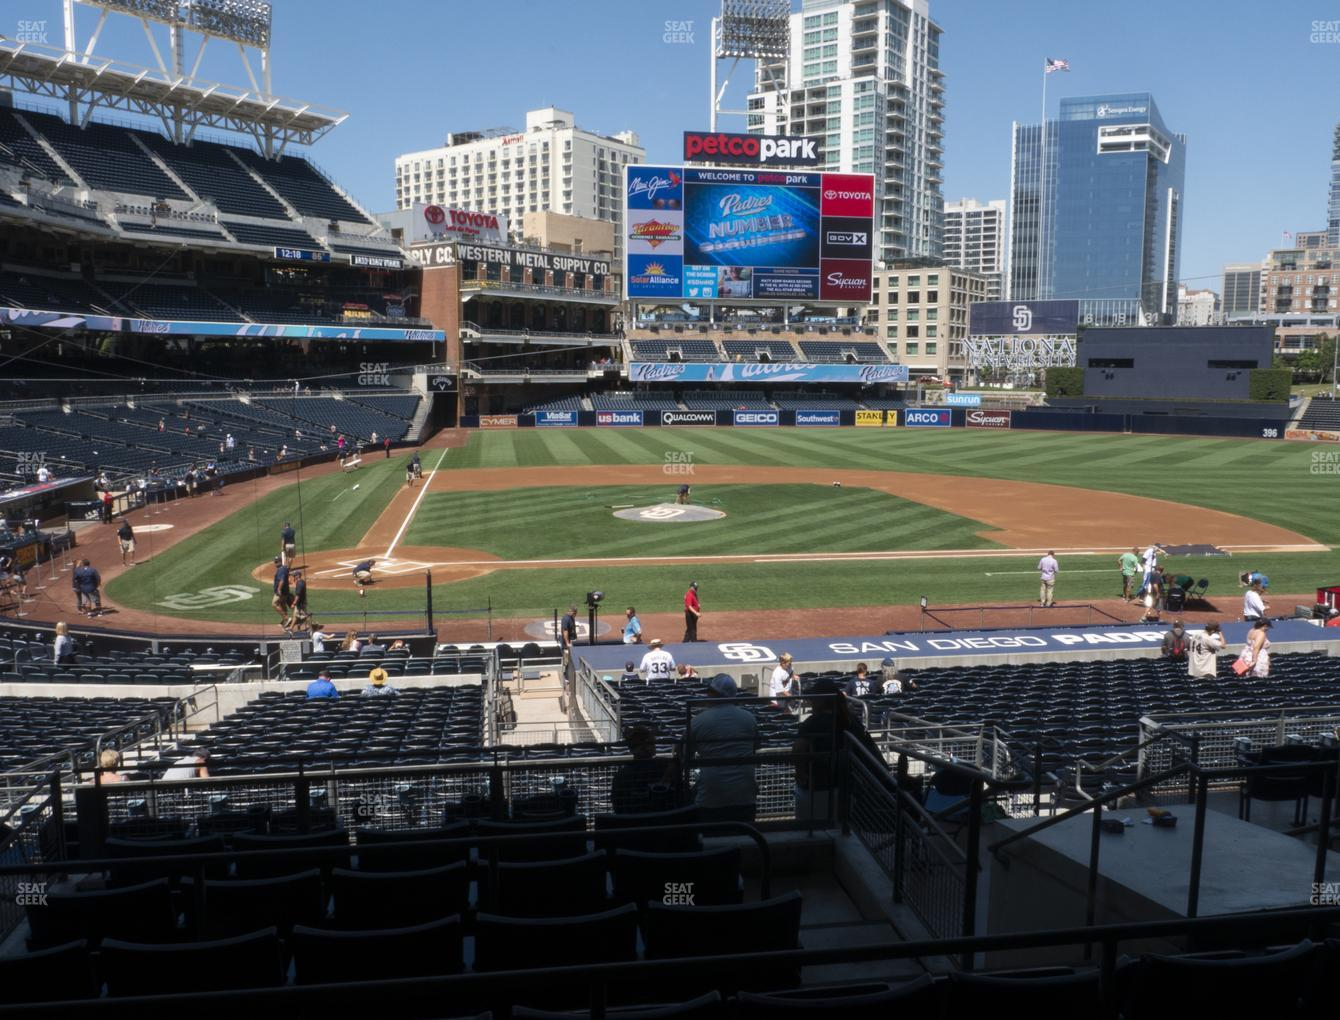 San Diego Padres at Petco Park Premier Club L View